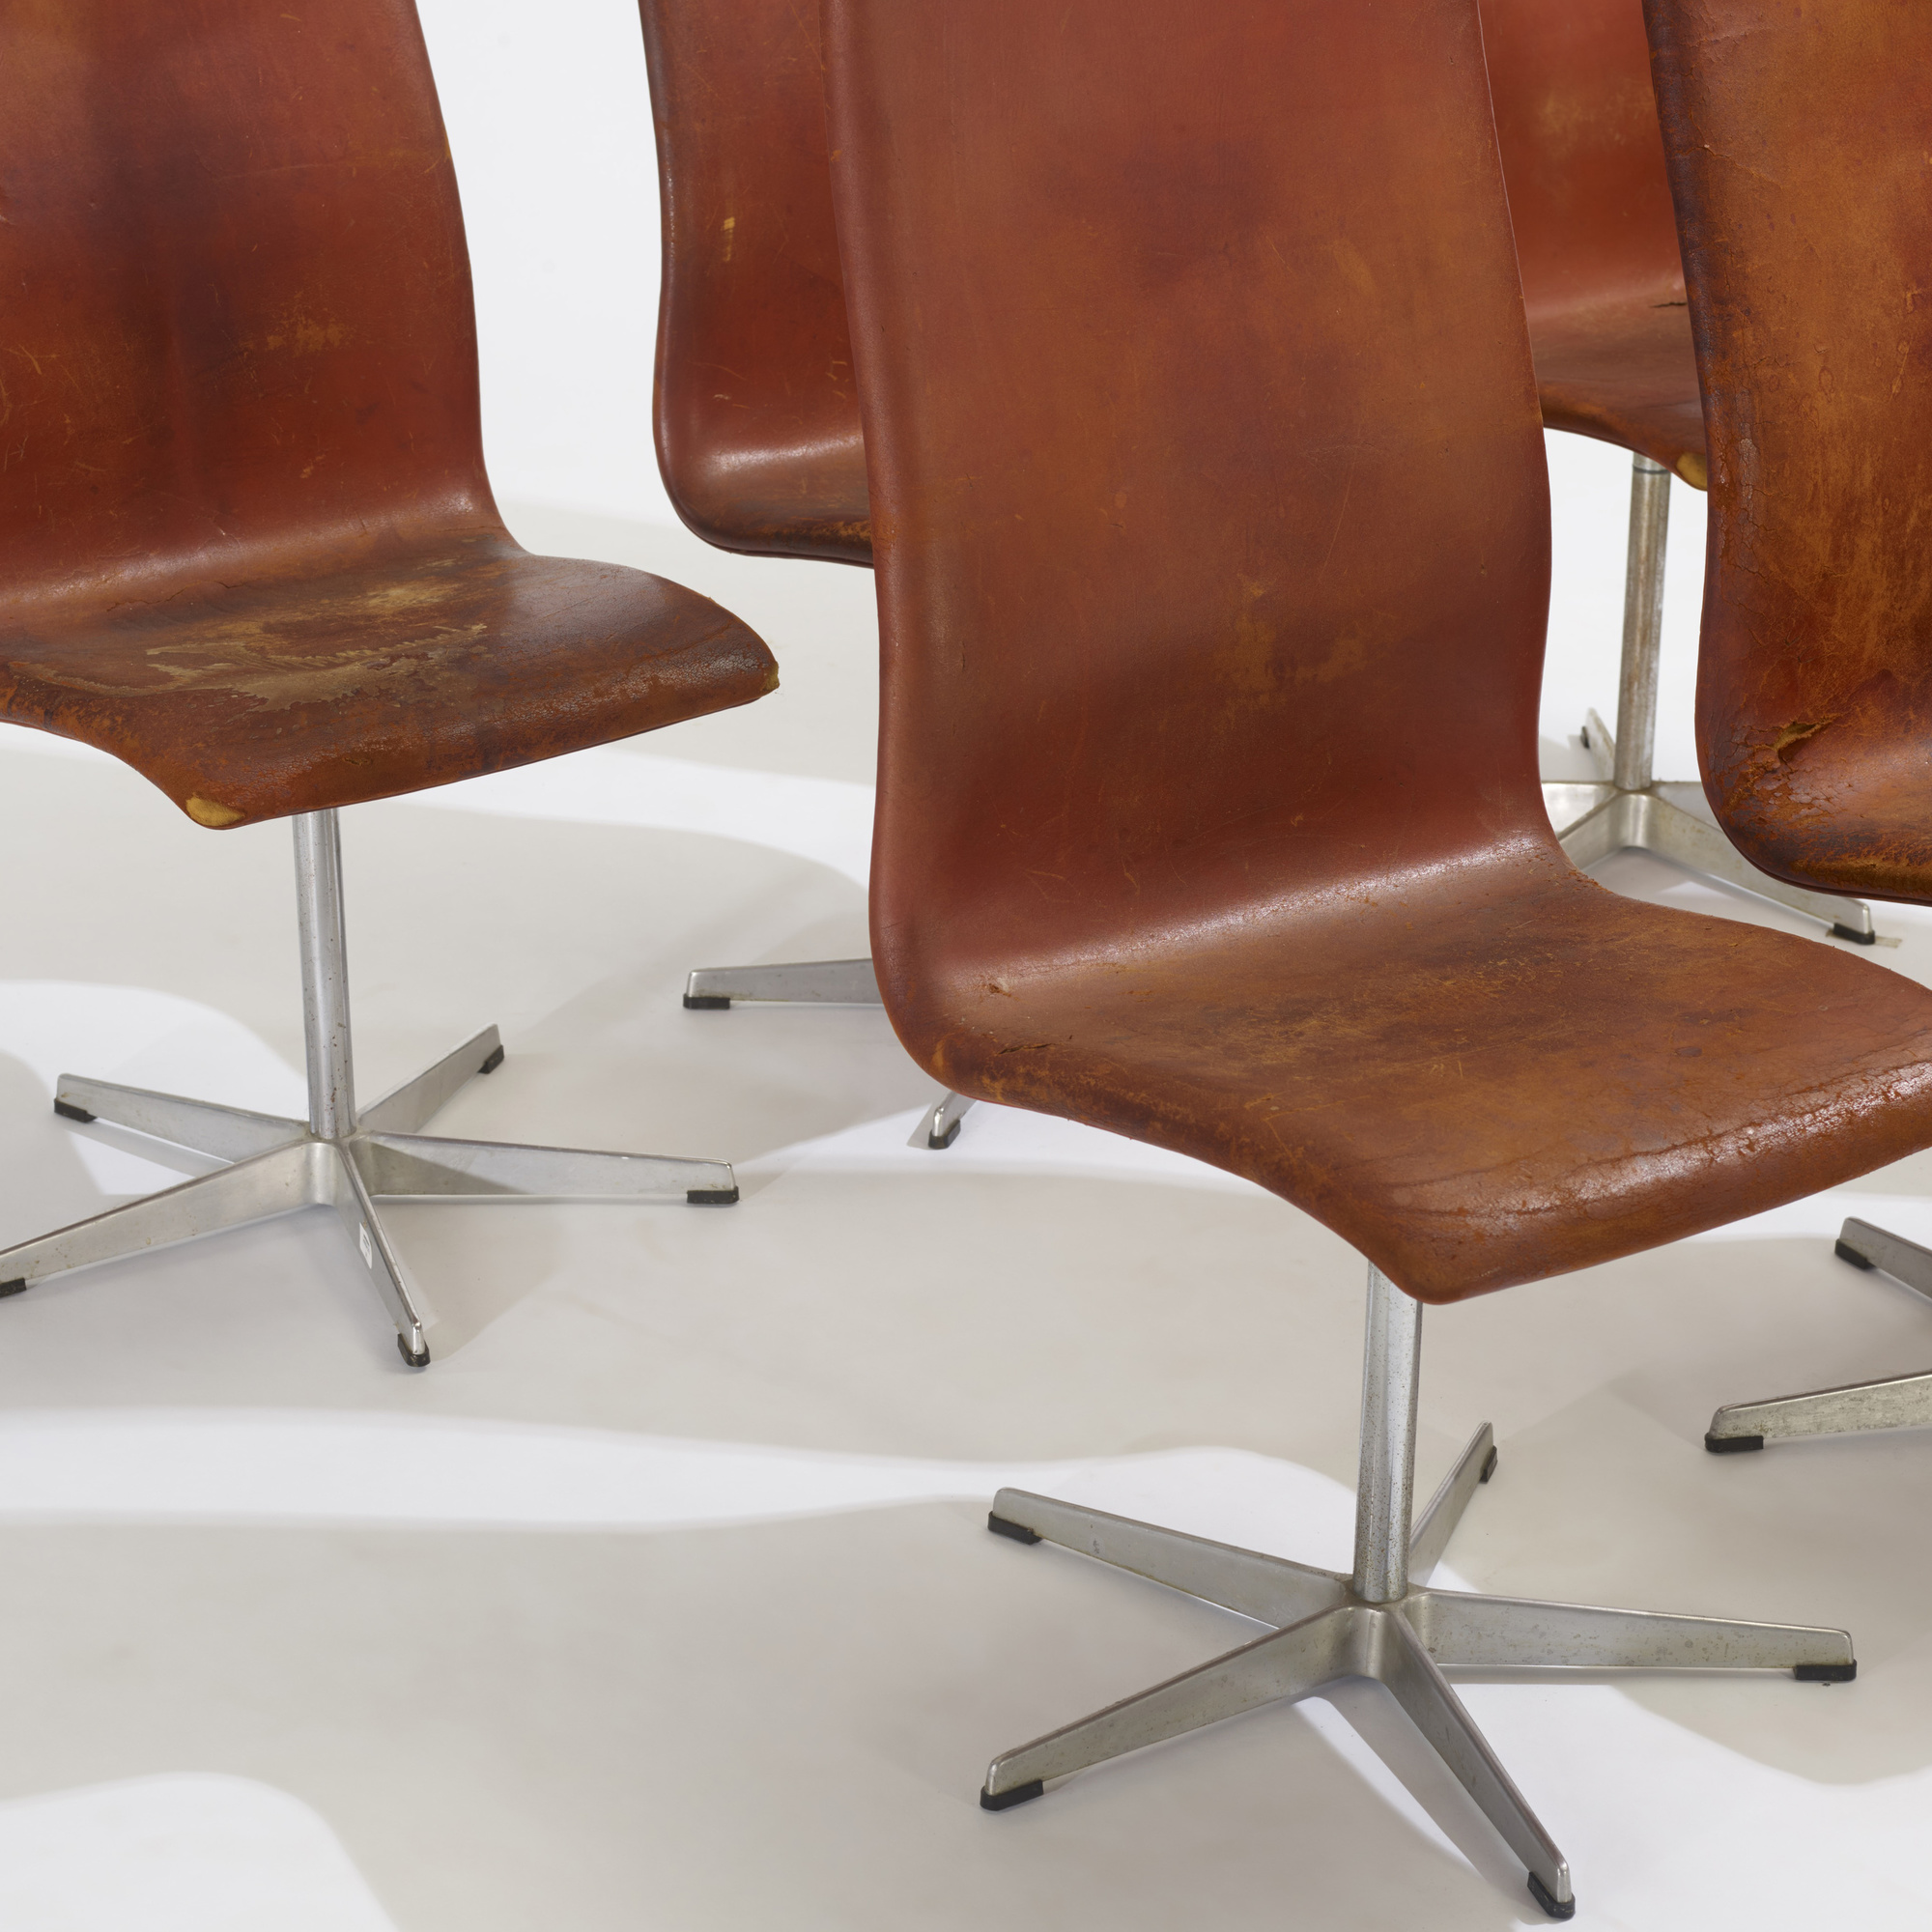 230: Arne Jacobsen / Oxford chairs model 7403, set of six (3 of 3)